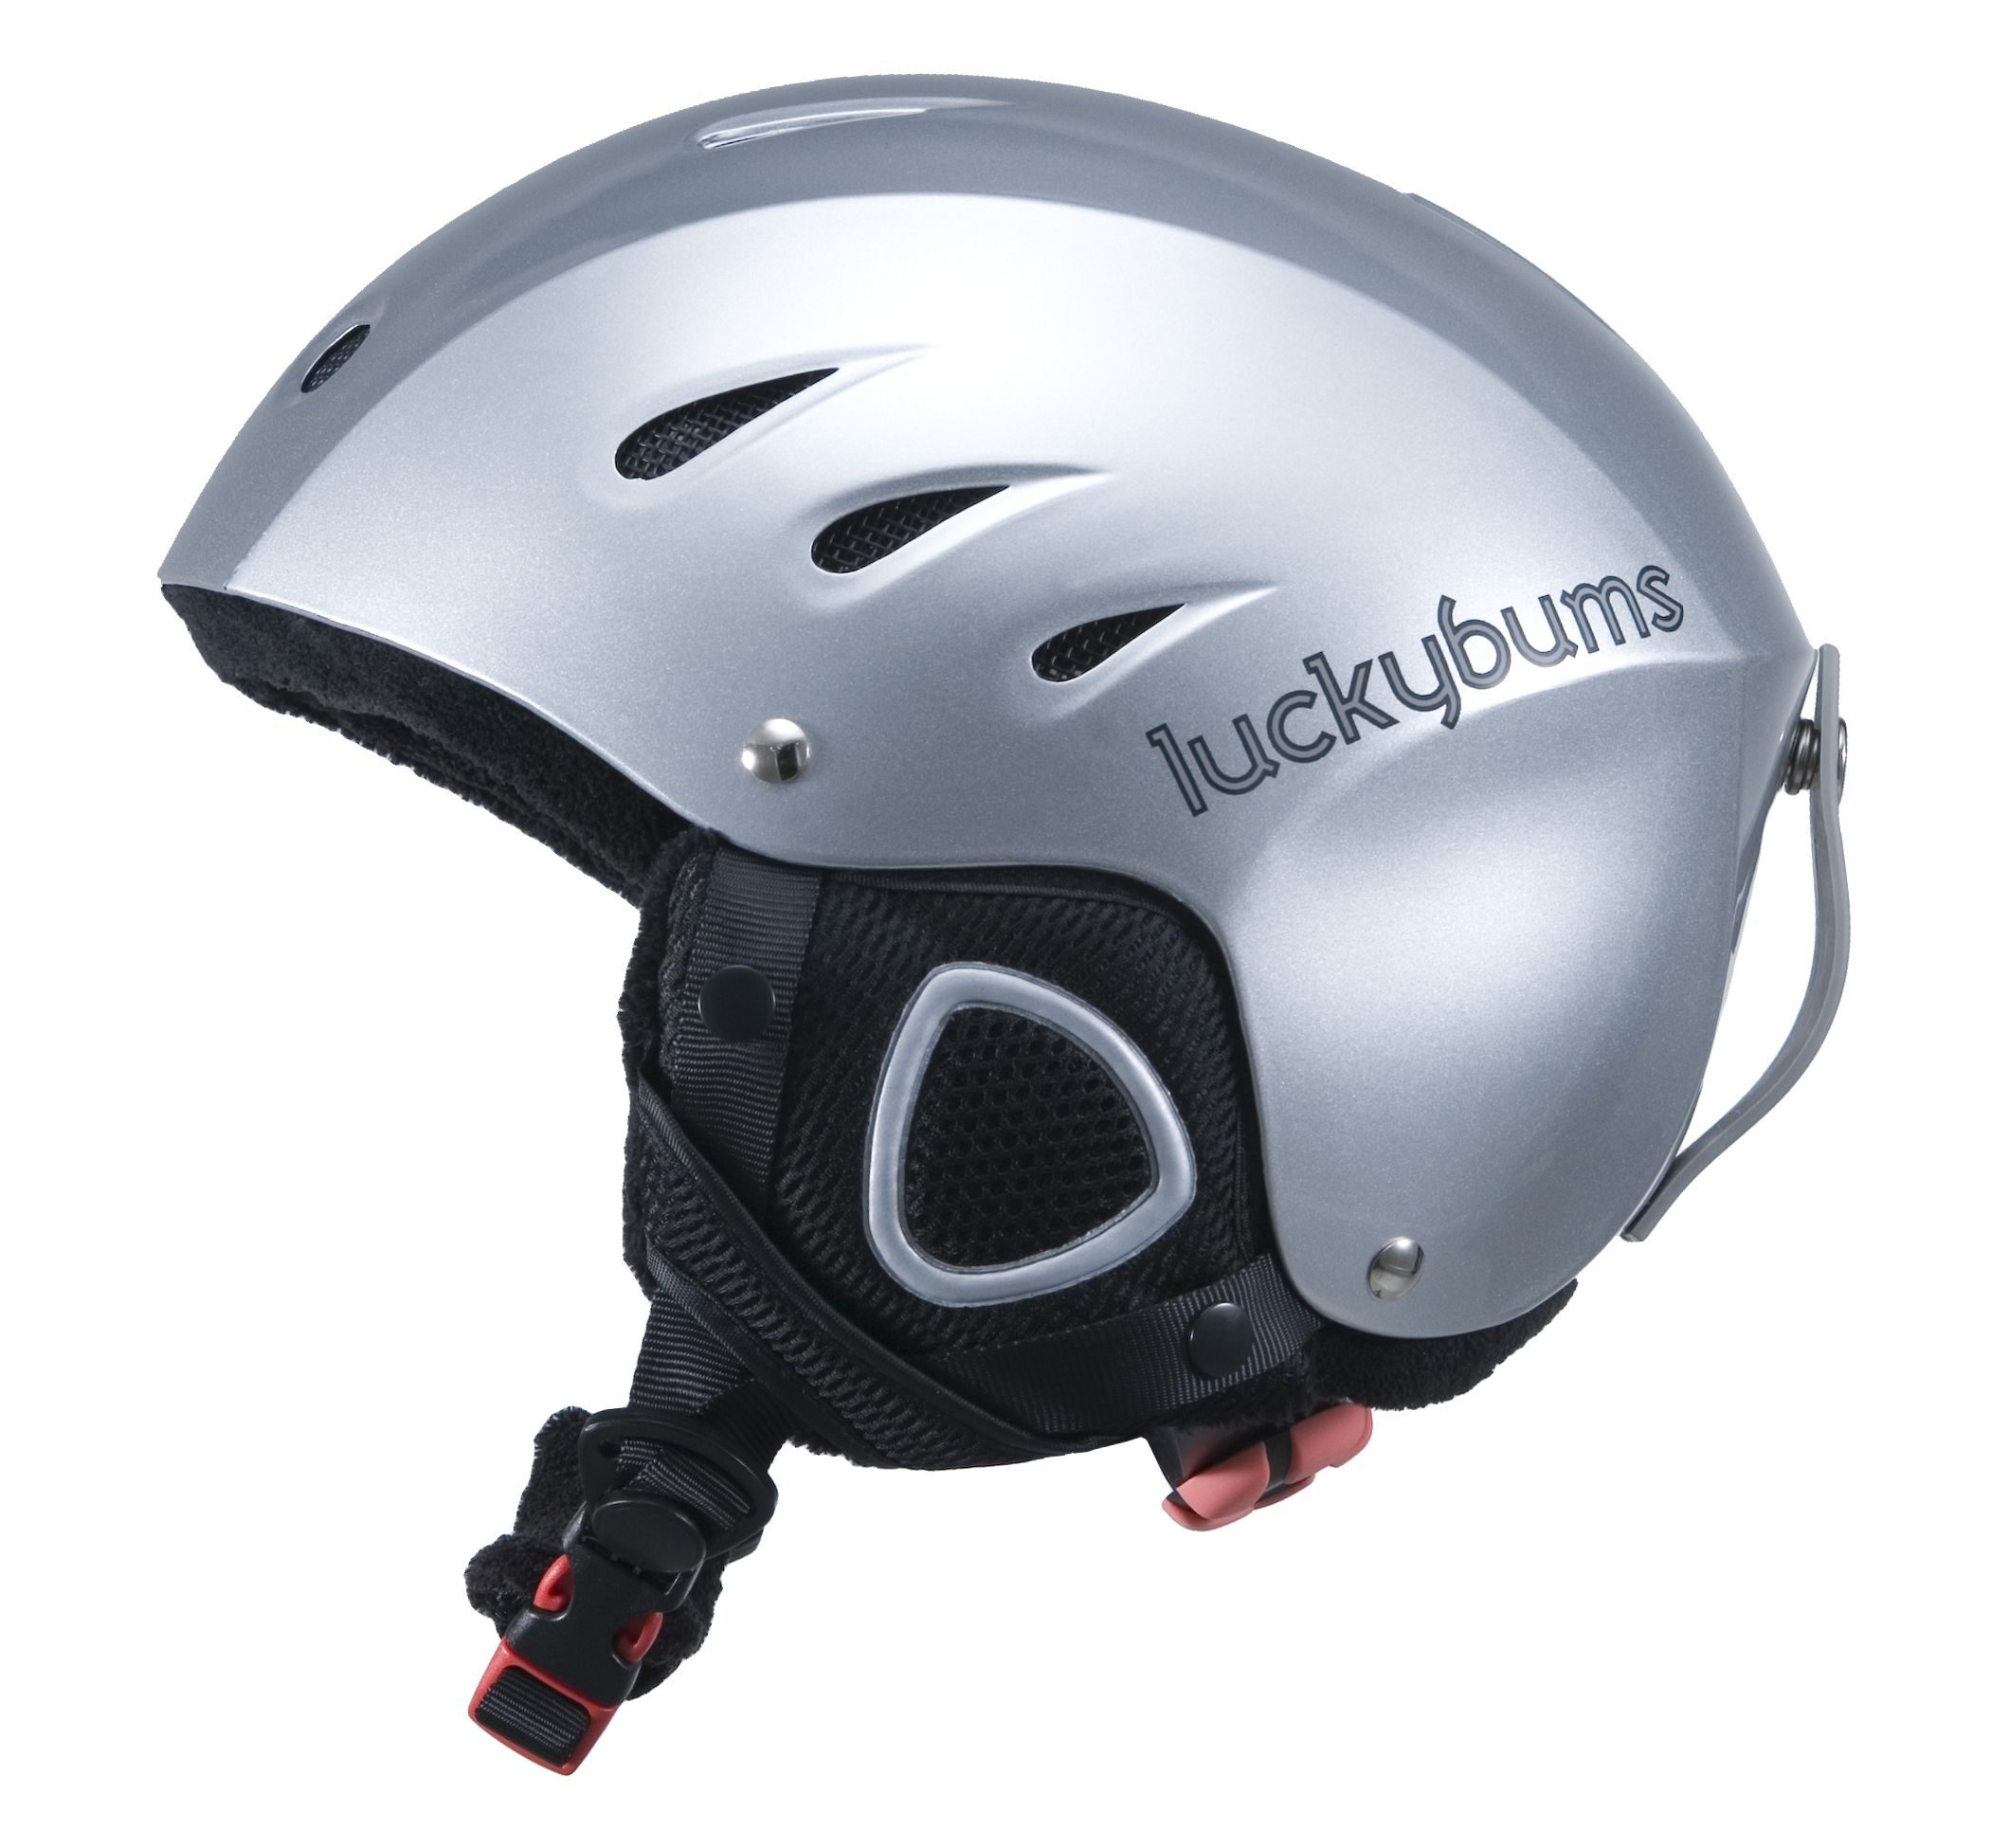 Lucky Bums Snow Sport Helmet, Silver, Large by Lucky Bums